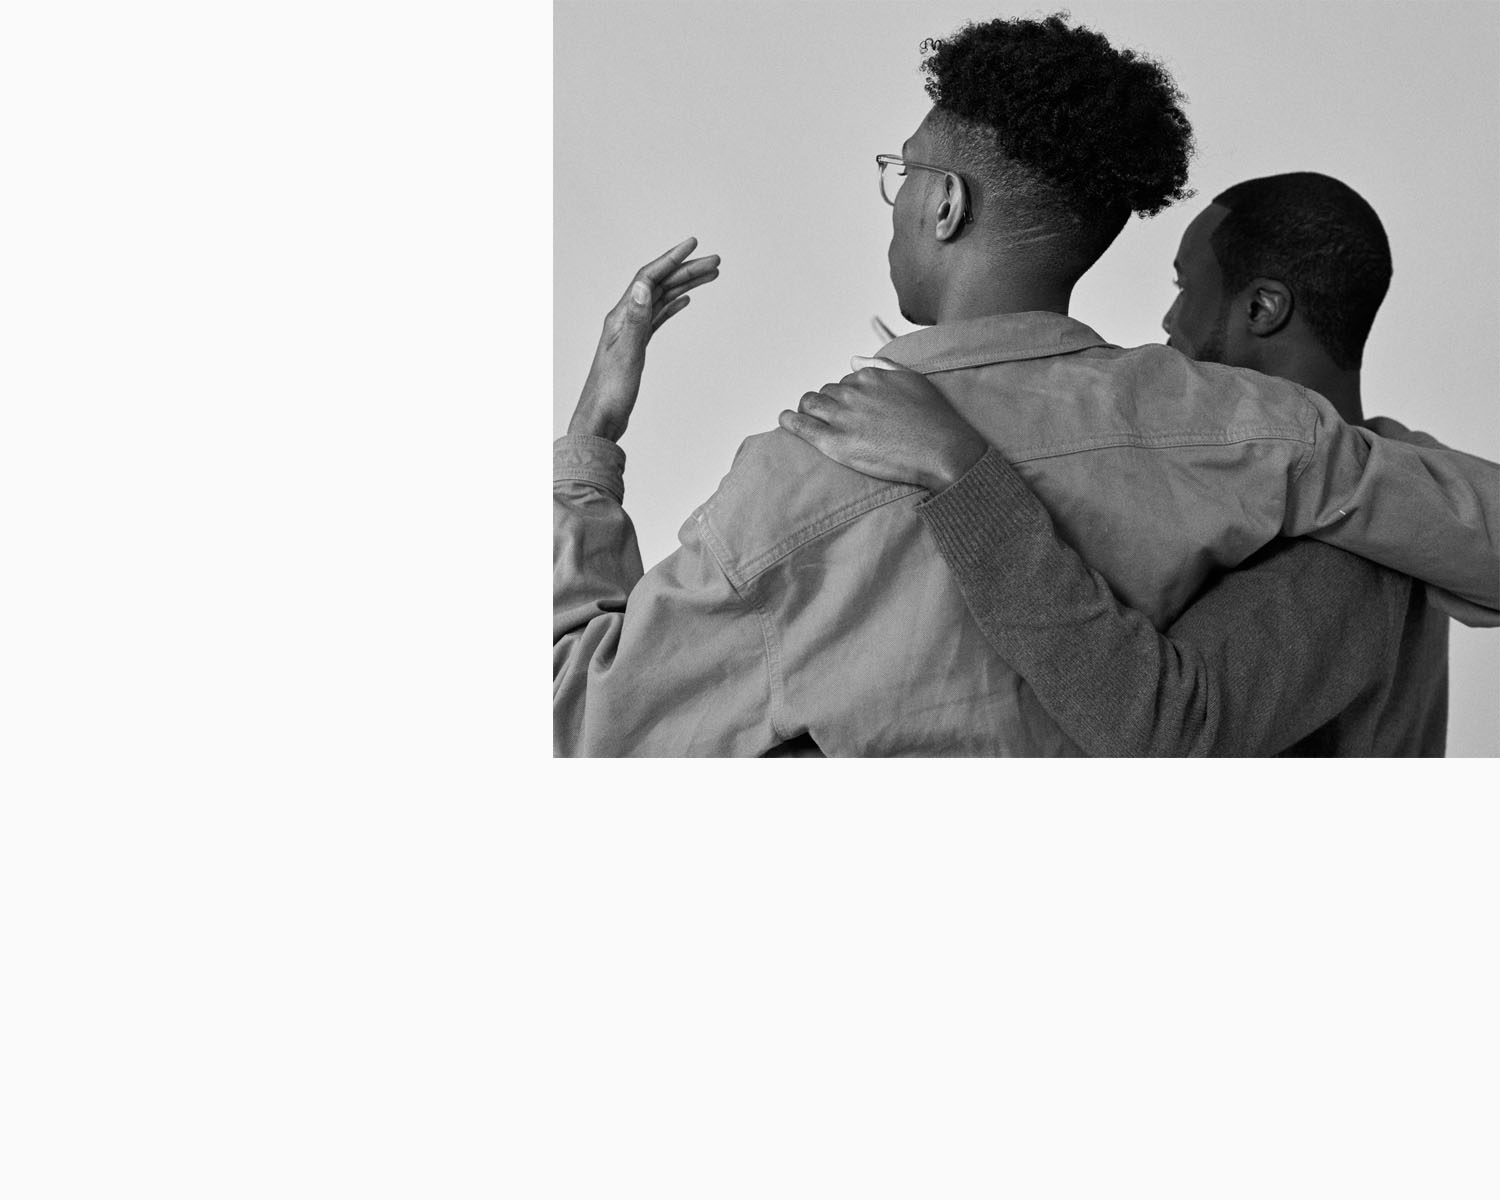 Amos Bursary men hold each other, by portrait photographer